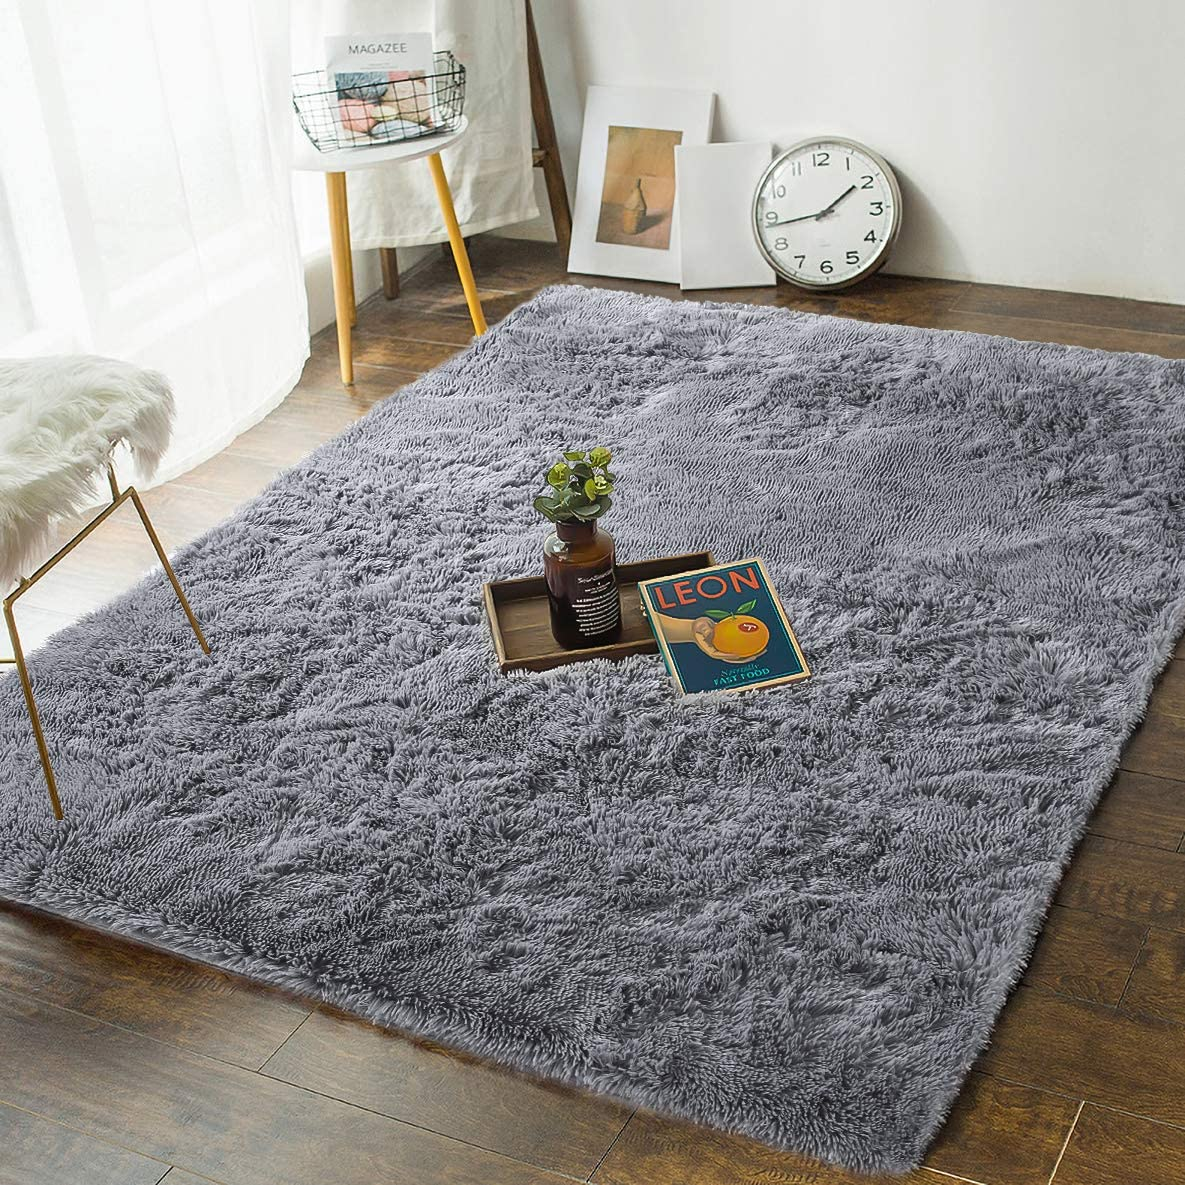 Andecor Soft Bedroom Rugs - 4\' x 6\' Shaggy Floor Area Rug for Living Room  Kids Room Home Decor Carpet, Grey